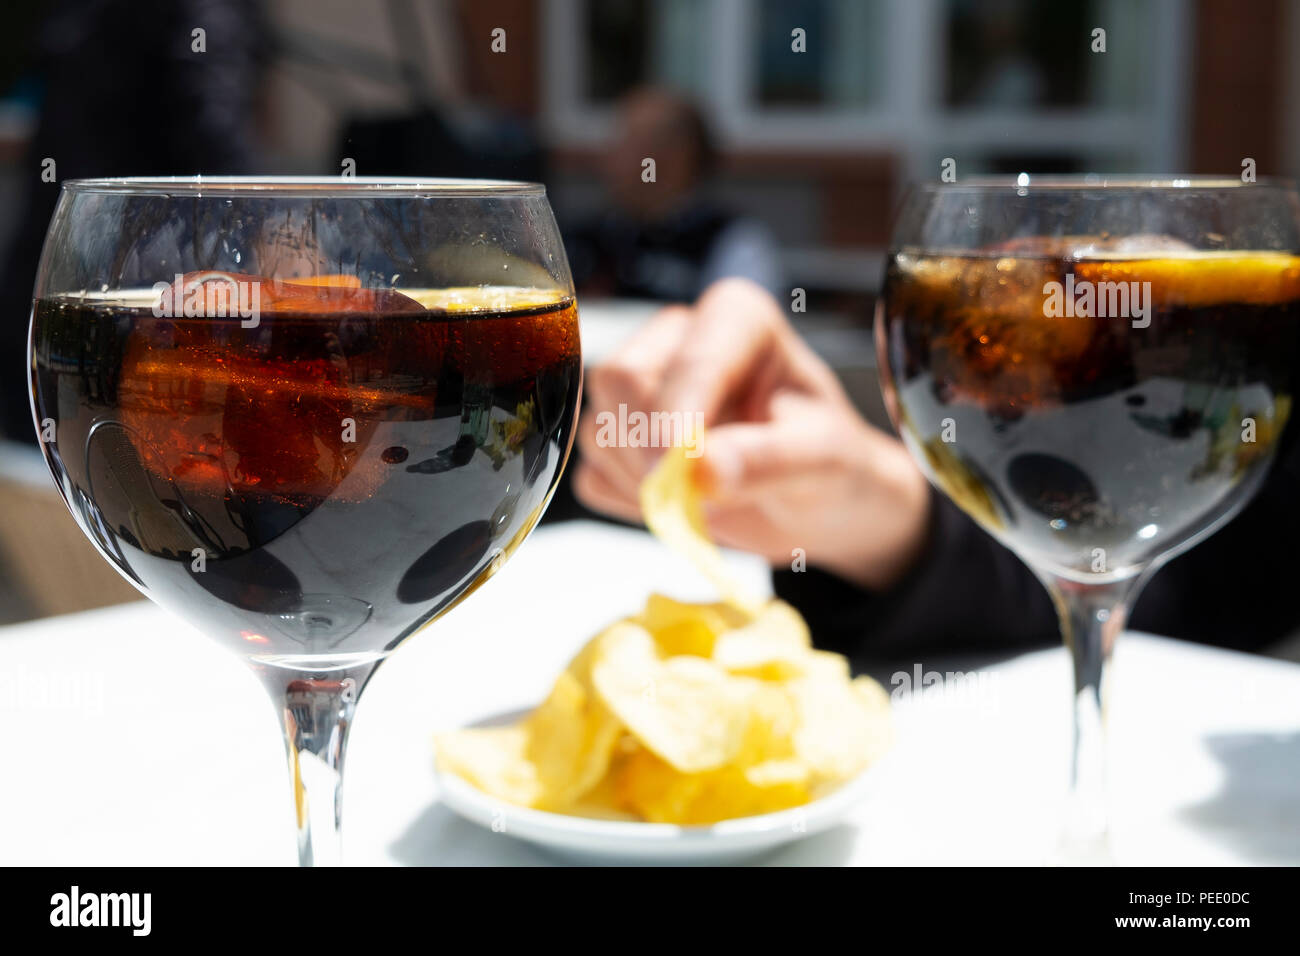 closeup of two glasses with vermouth, a fortified wine served on the rocks with a slice of orange, and a bowl with potato chips, eaten traditionally a - Stock Image